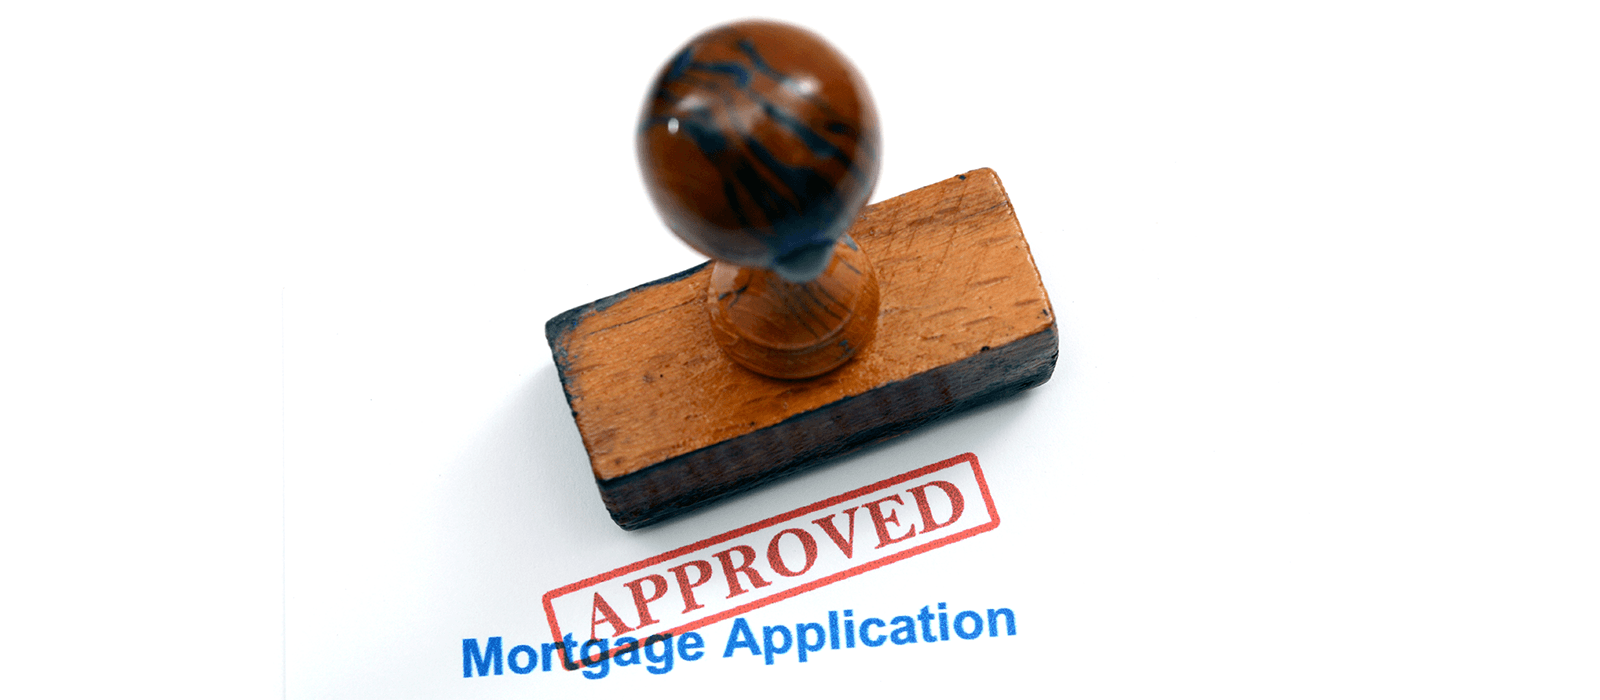 What You Need to Know (and Have Ready) for the Mortgage Approval Process Featured Image